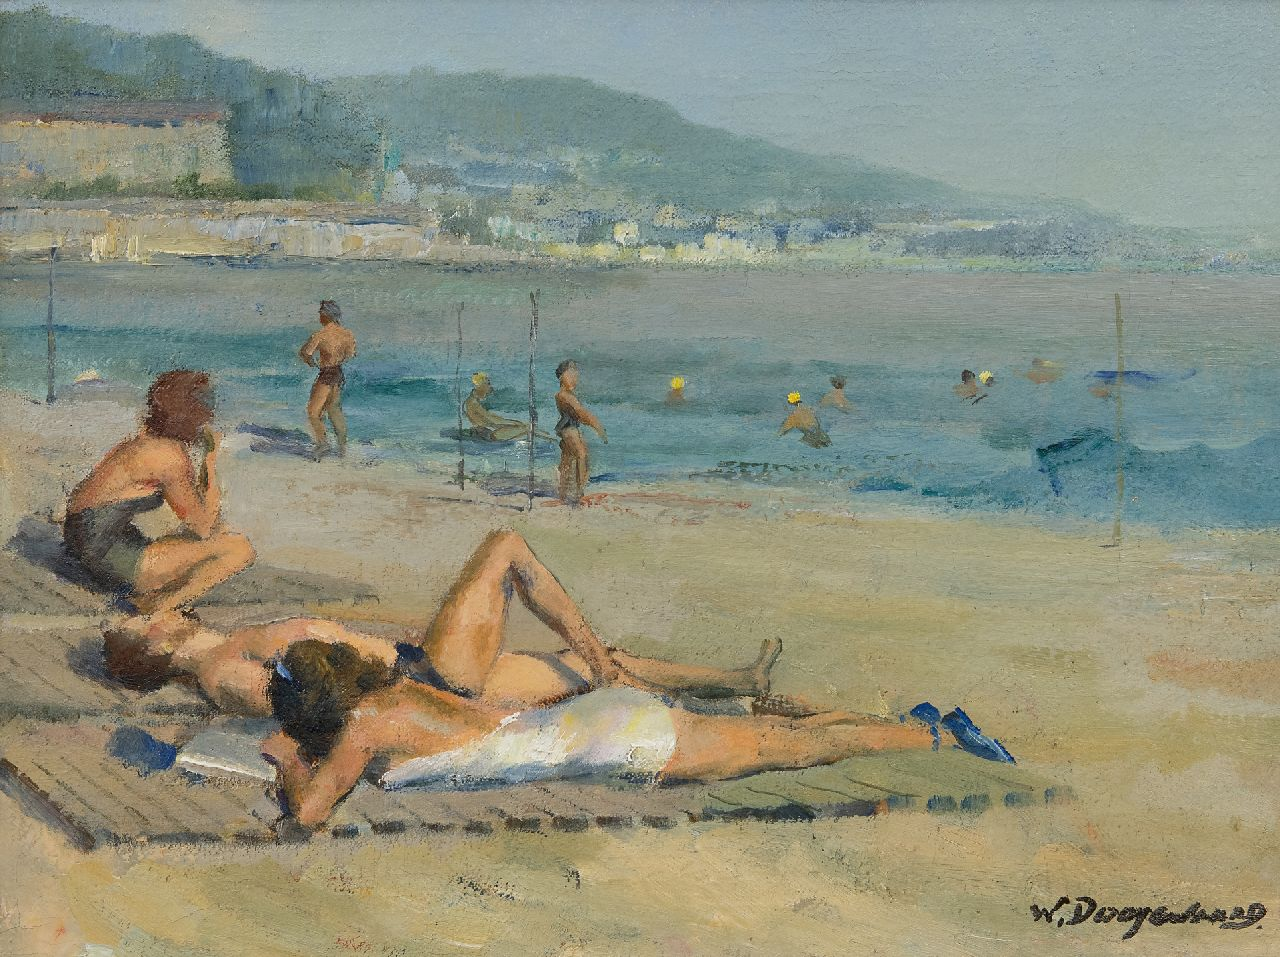 Willem Dooijewaard | Sunbathe on the beach of Nice, oil on canvas, 32.3 x 43.2 cm, signed l.r. and painted in the 1930's